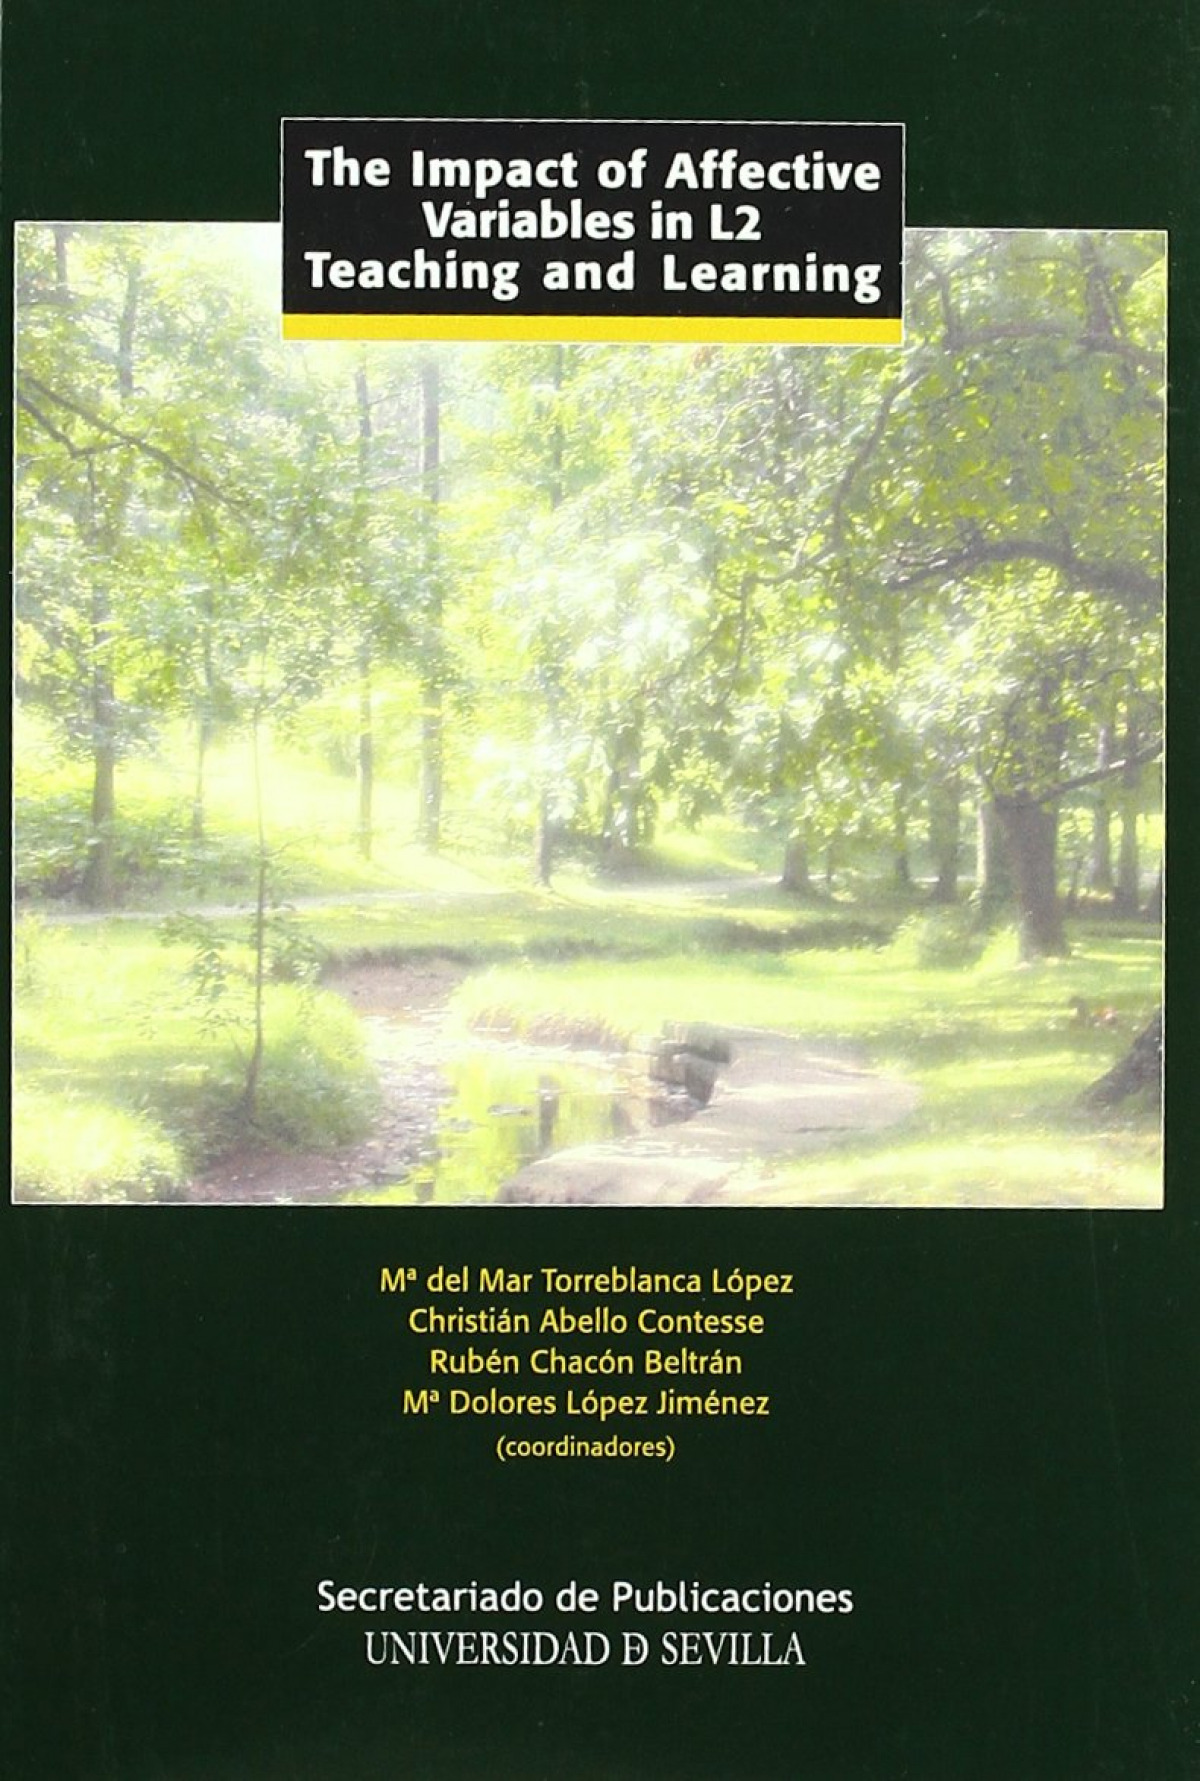 The impact of affective variables in l2 teaching and learnin - Chacon Beltran, Ruben